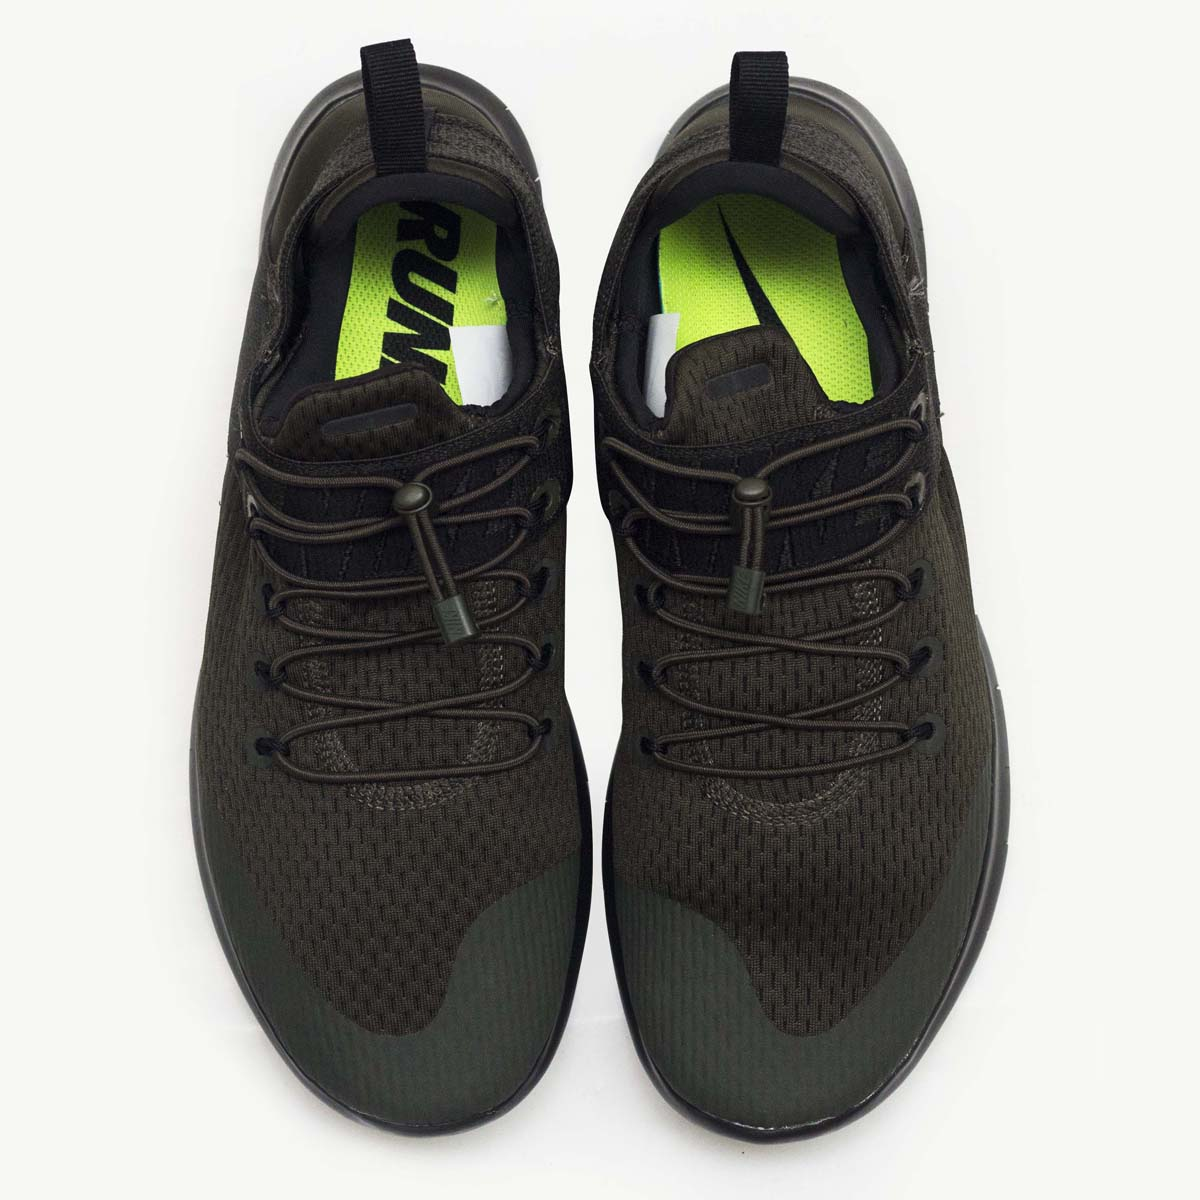 super popular 02ce8 b4f92 Nike Free RN Commuter